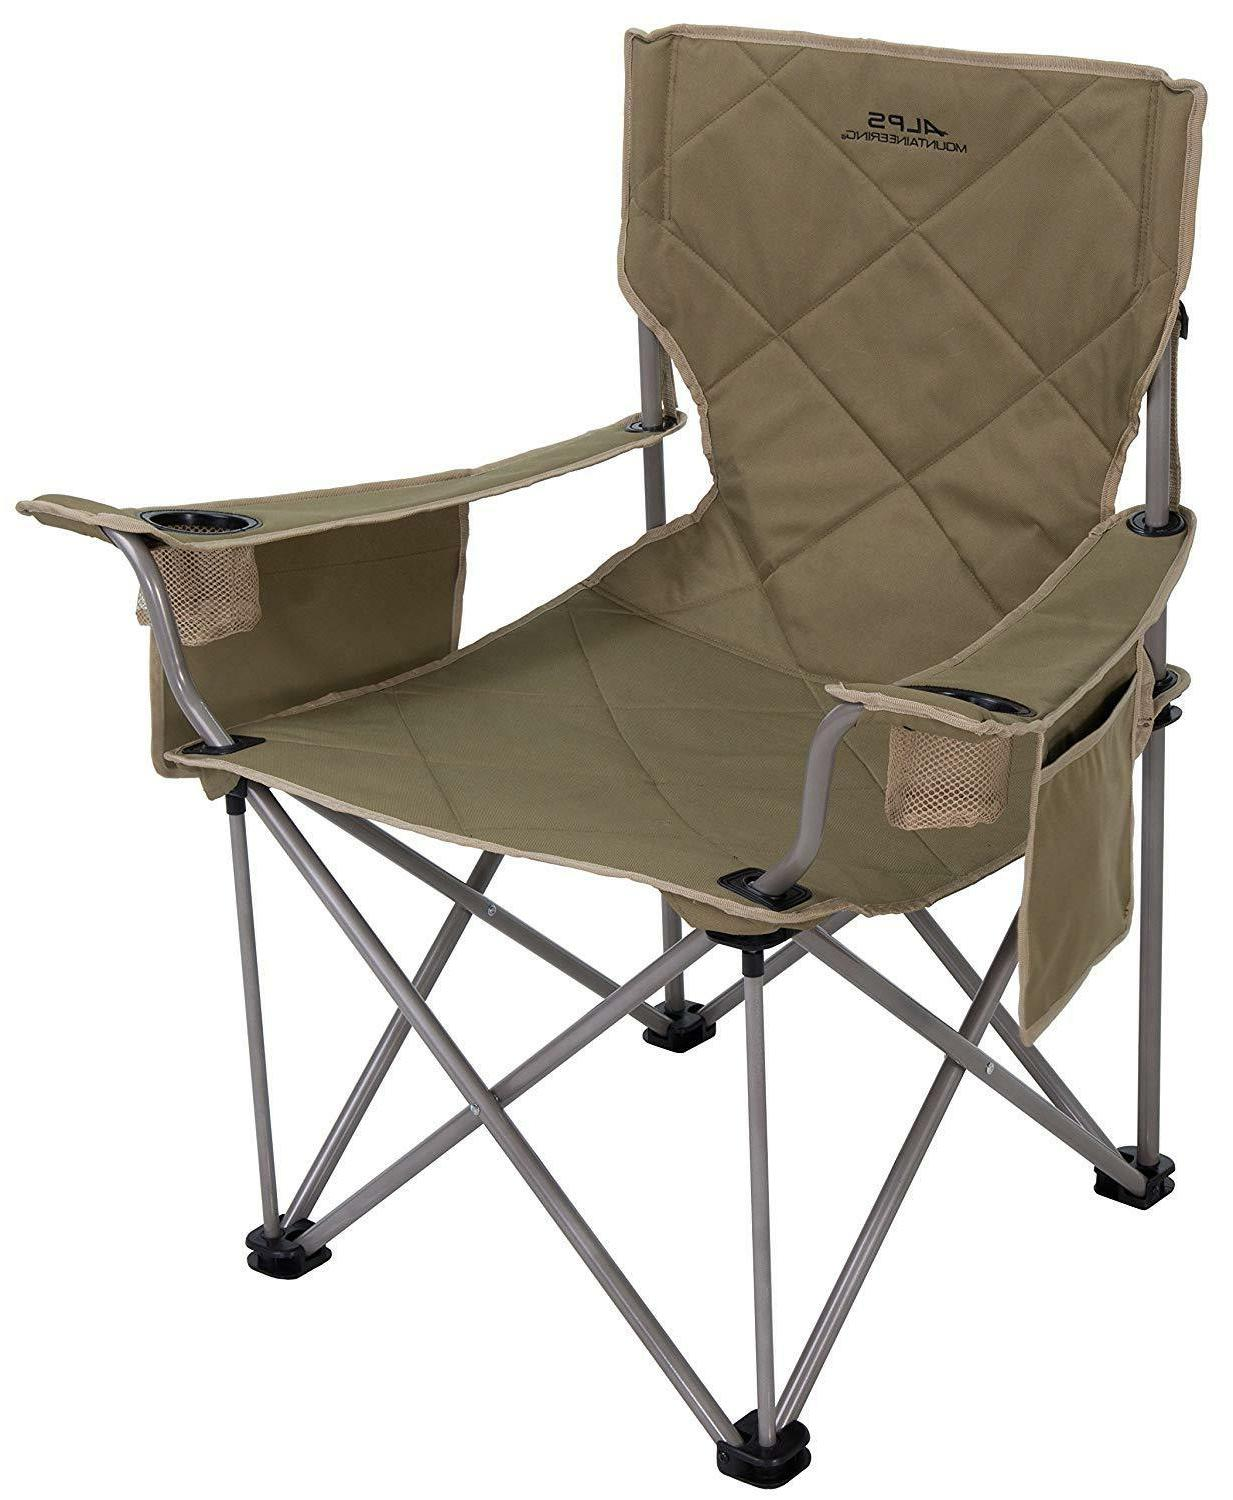 large folding chair easy to carry camping